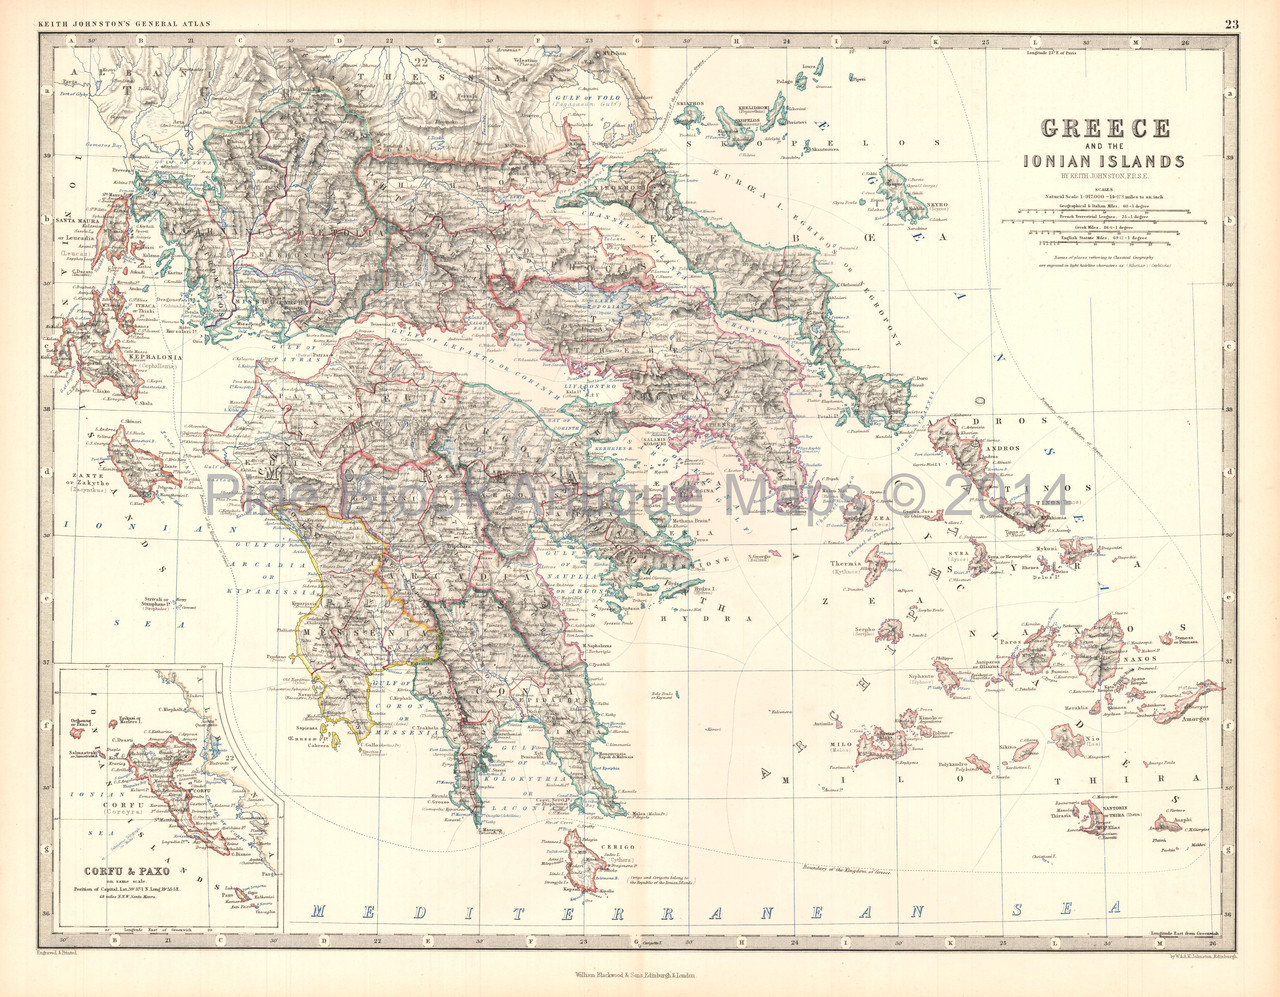 Greece Ionian Islands Antique Map Johnston 1861